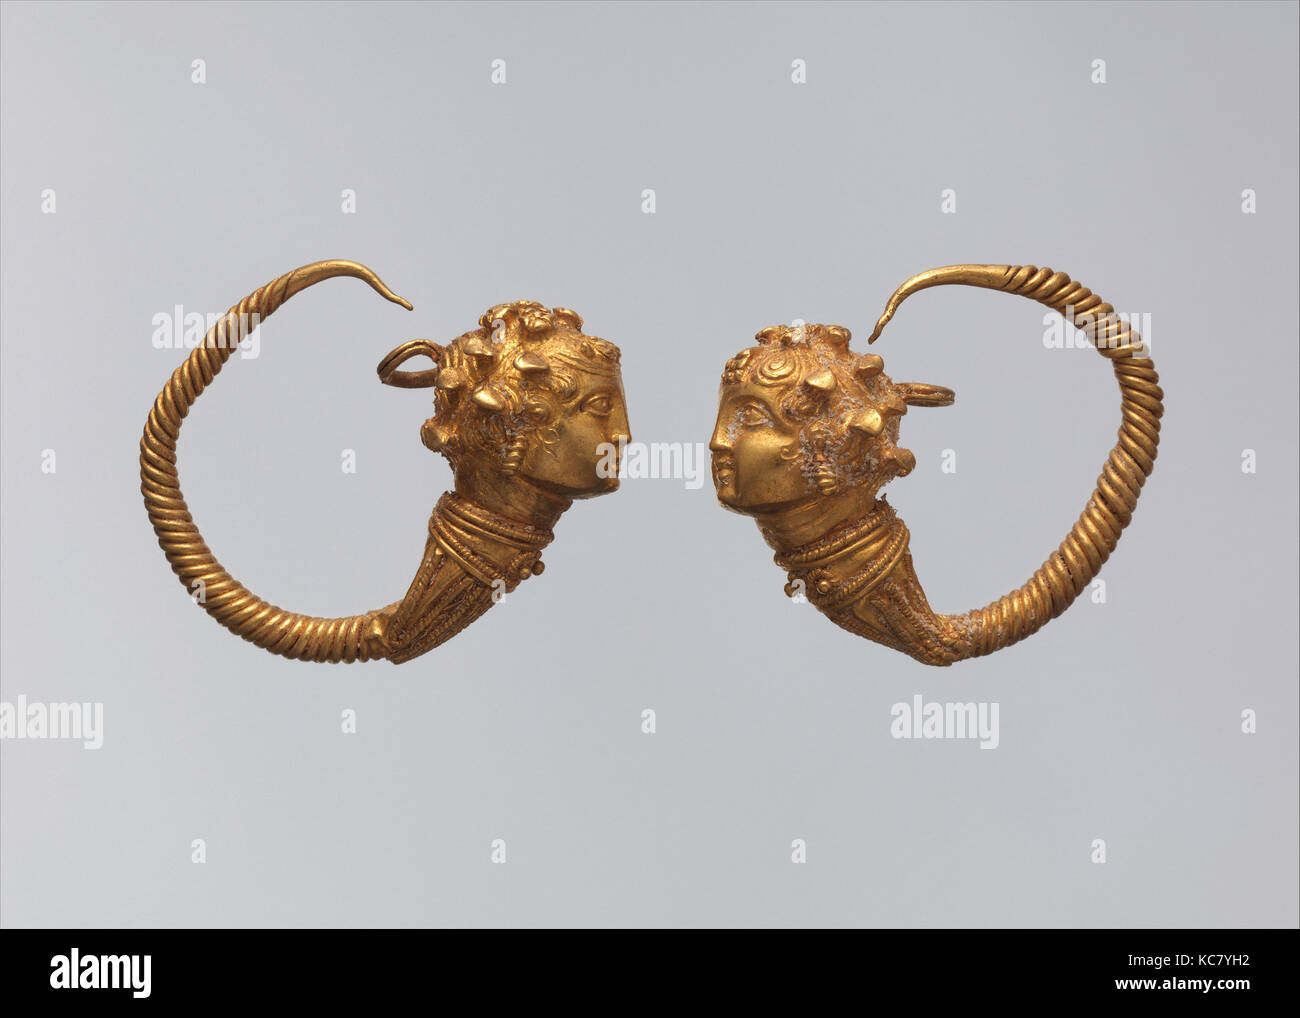 Maenad-head earrings, Ptolemaic Period, 1st century B.C., From Egypt, gold, a. As Worn: H. 2.5 × W. 2.9 cm (1 × Stock Photo